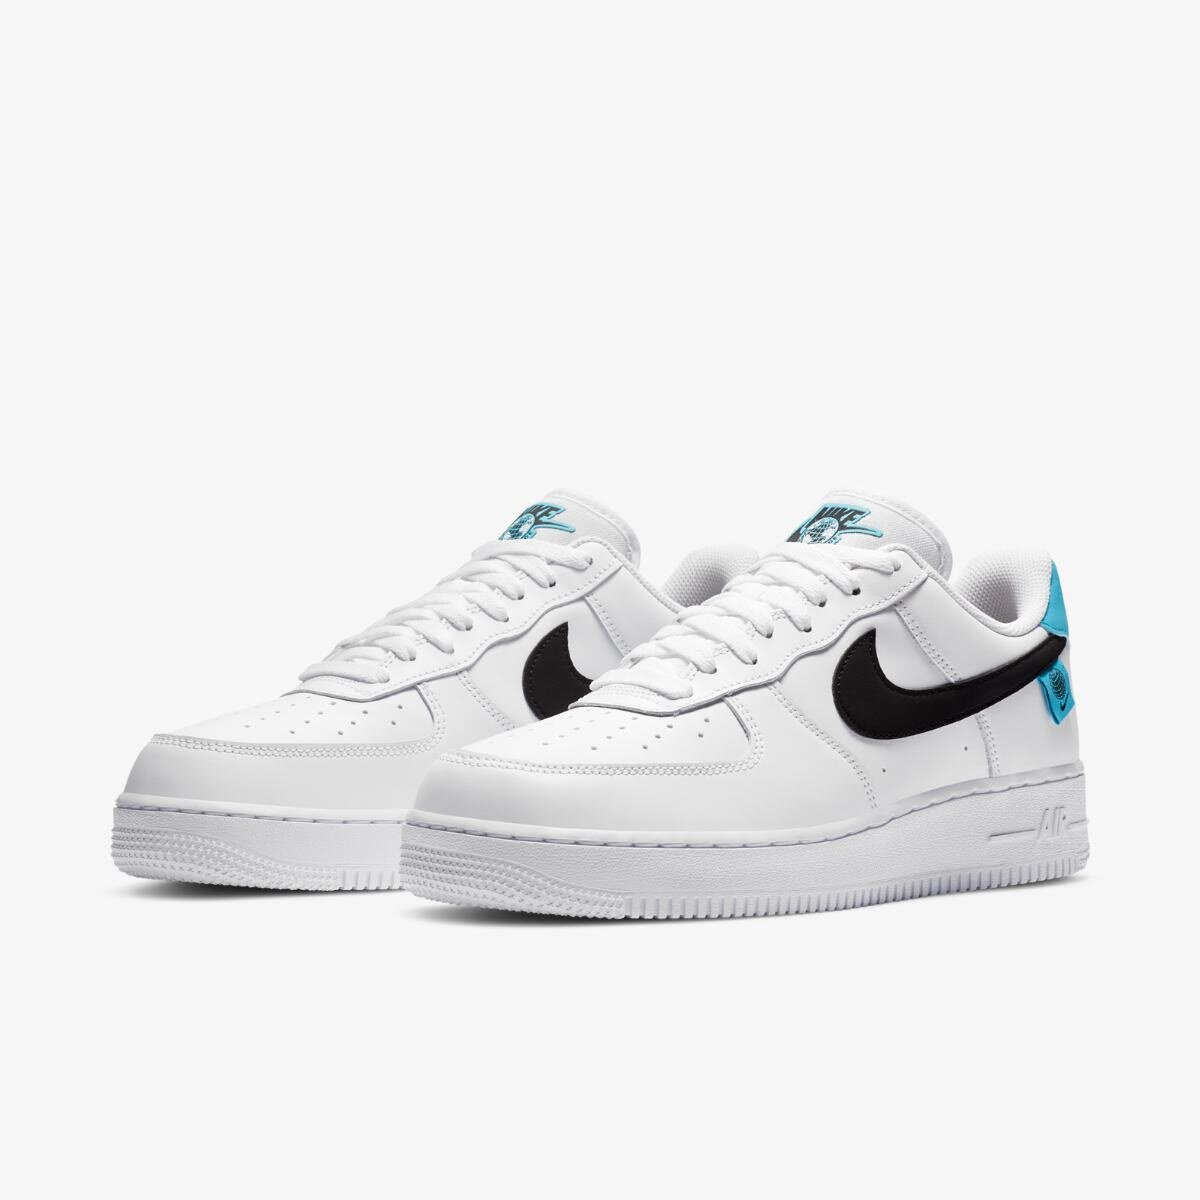 Кросівки Nike Air Force 1 Ww Gs Blue Fury (CN8533-100), 38